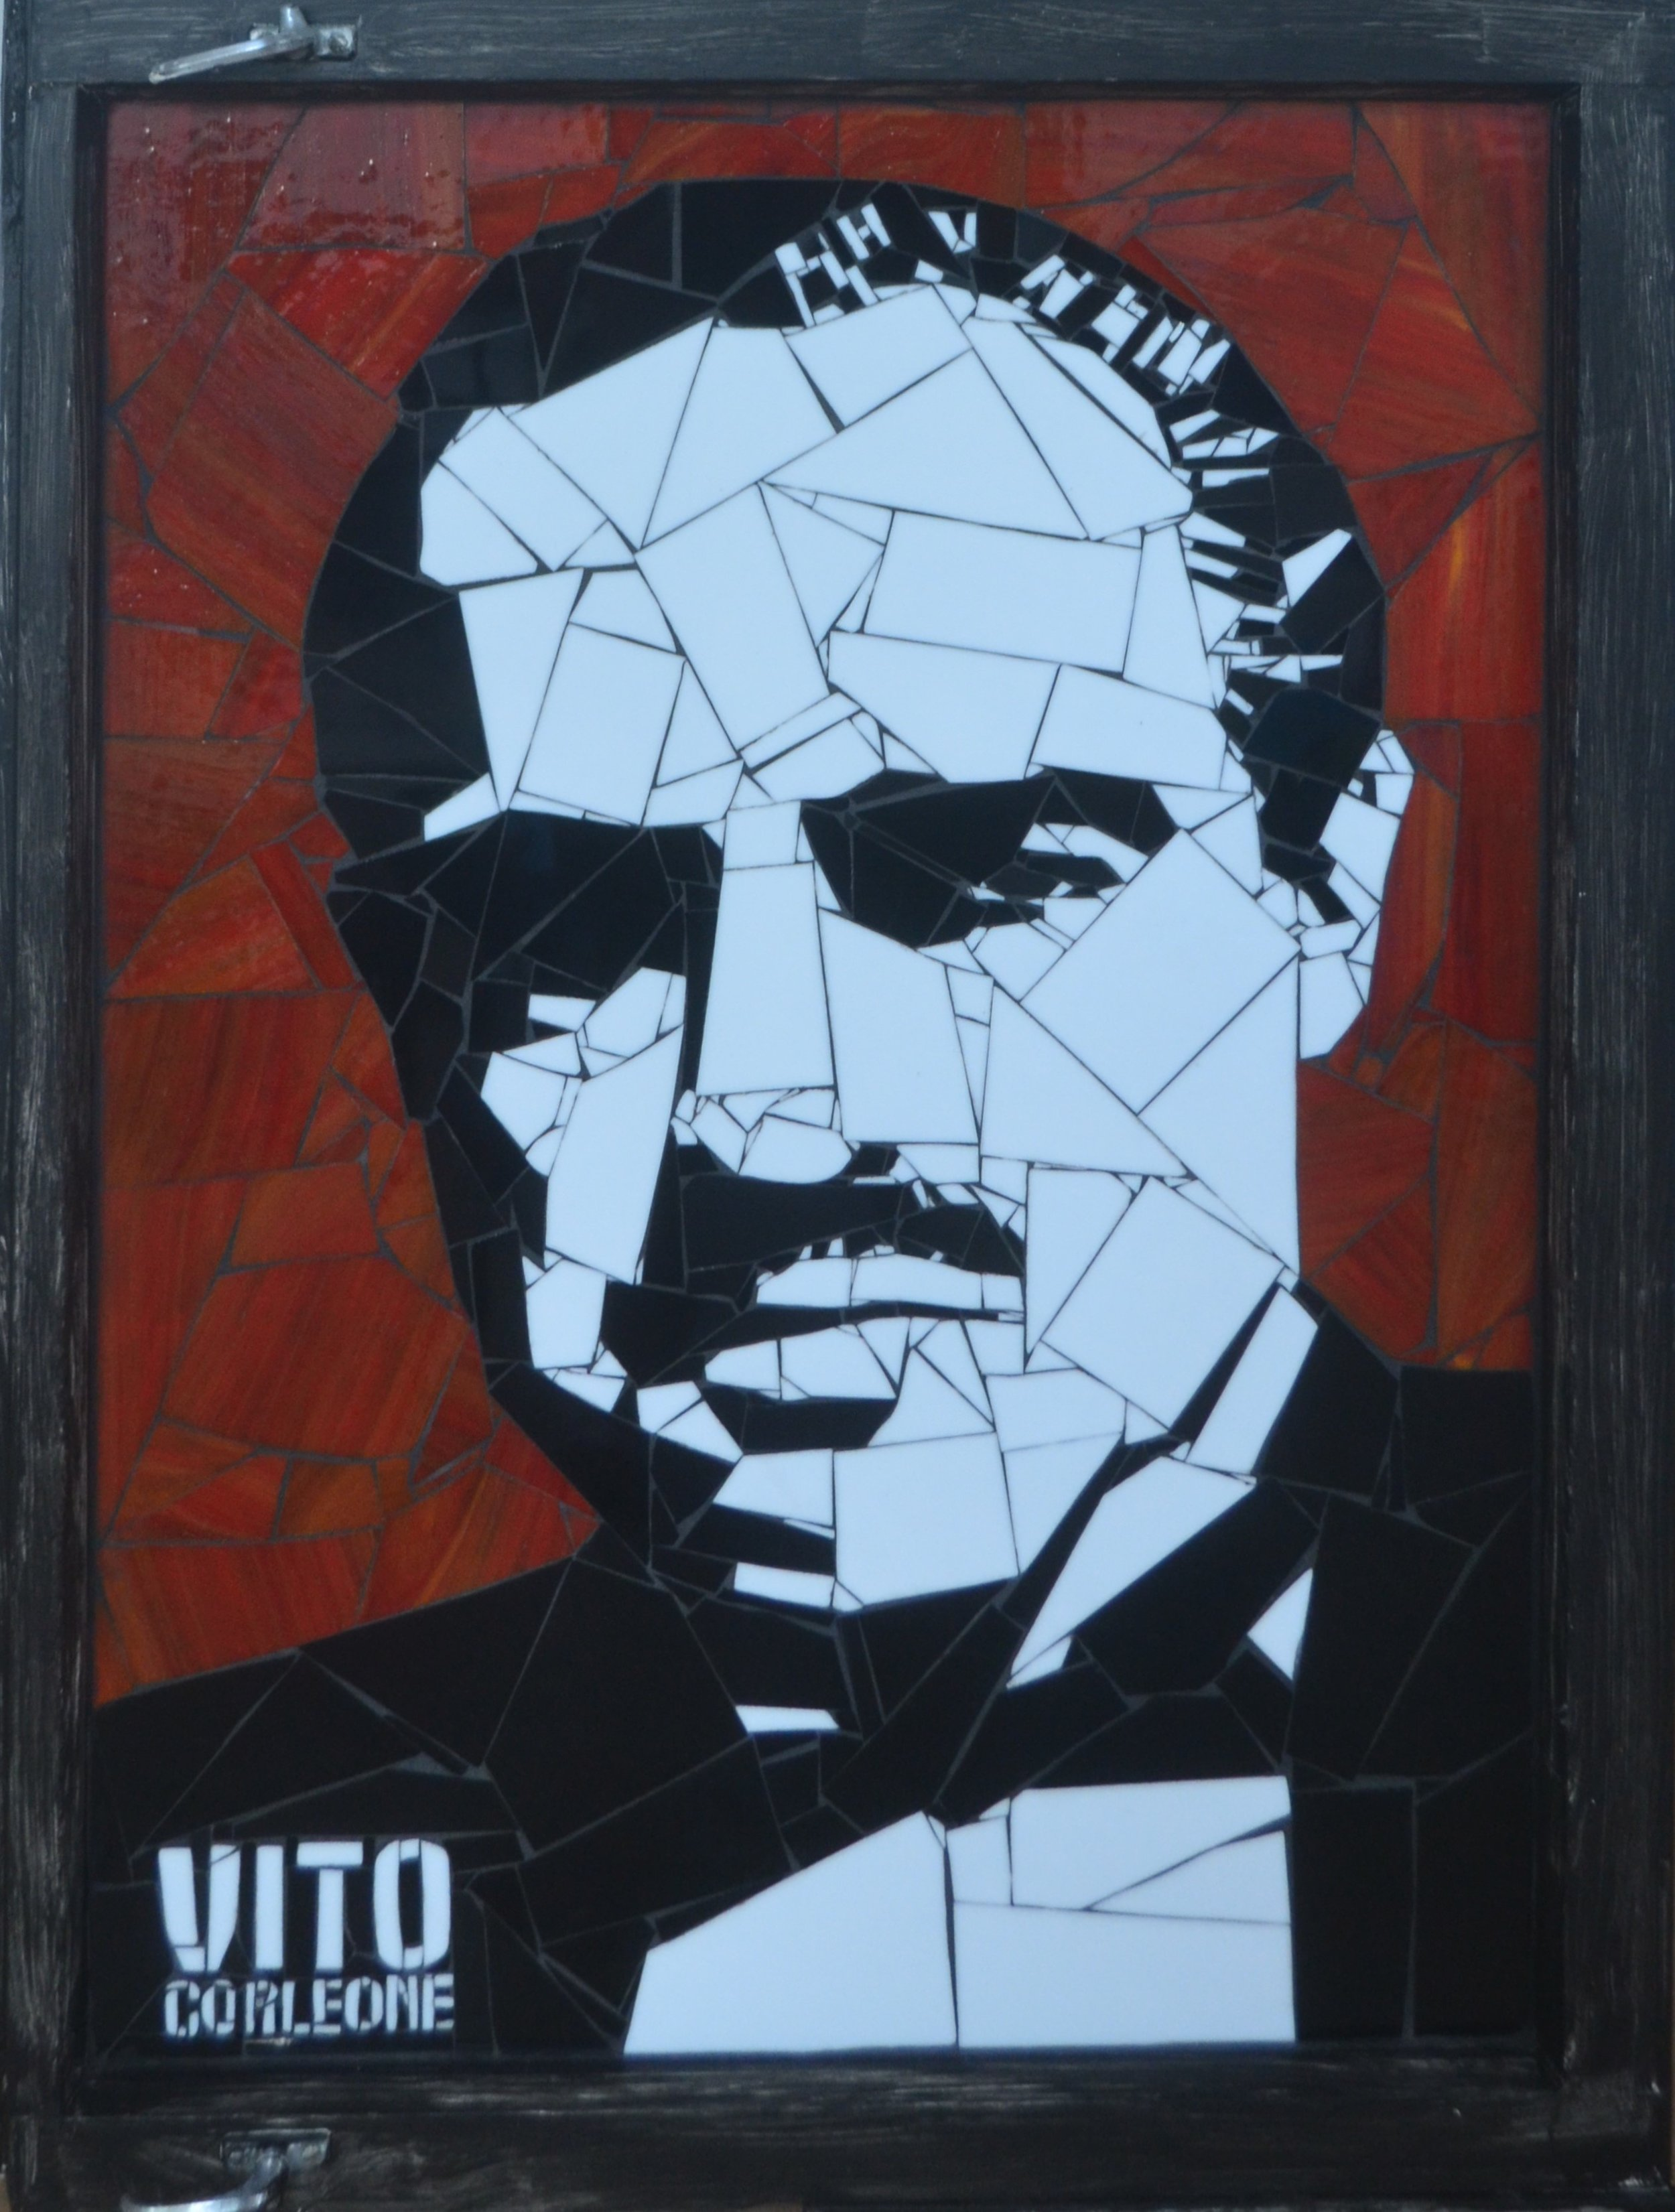 Vito Corleone  Danielle Fernandez, pop-art stained glass mosaic, sculpted on antique/distressed window pane, 910mm x 680mm. Vito Corleone was Marlon Brando's character in the classic movie The Godfather  $3,900.00